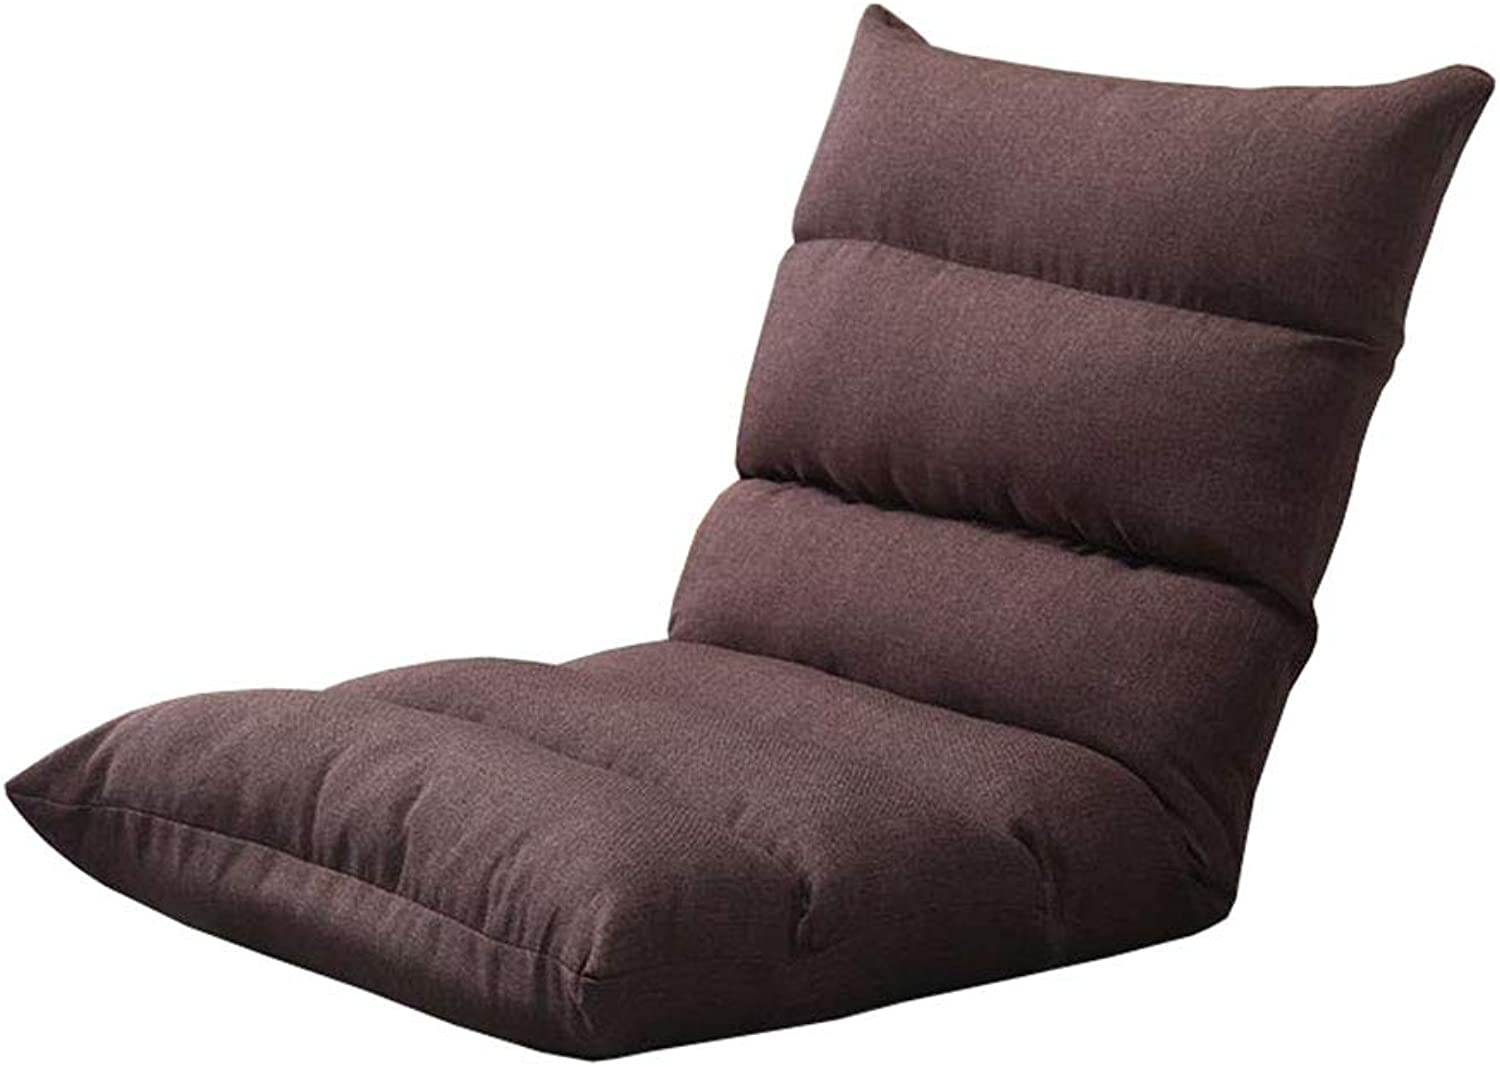 MDBLYJBay Window Chair, Lazy Sofa Foldable Computer Back Chair Floor Sofa @ (color   B)